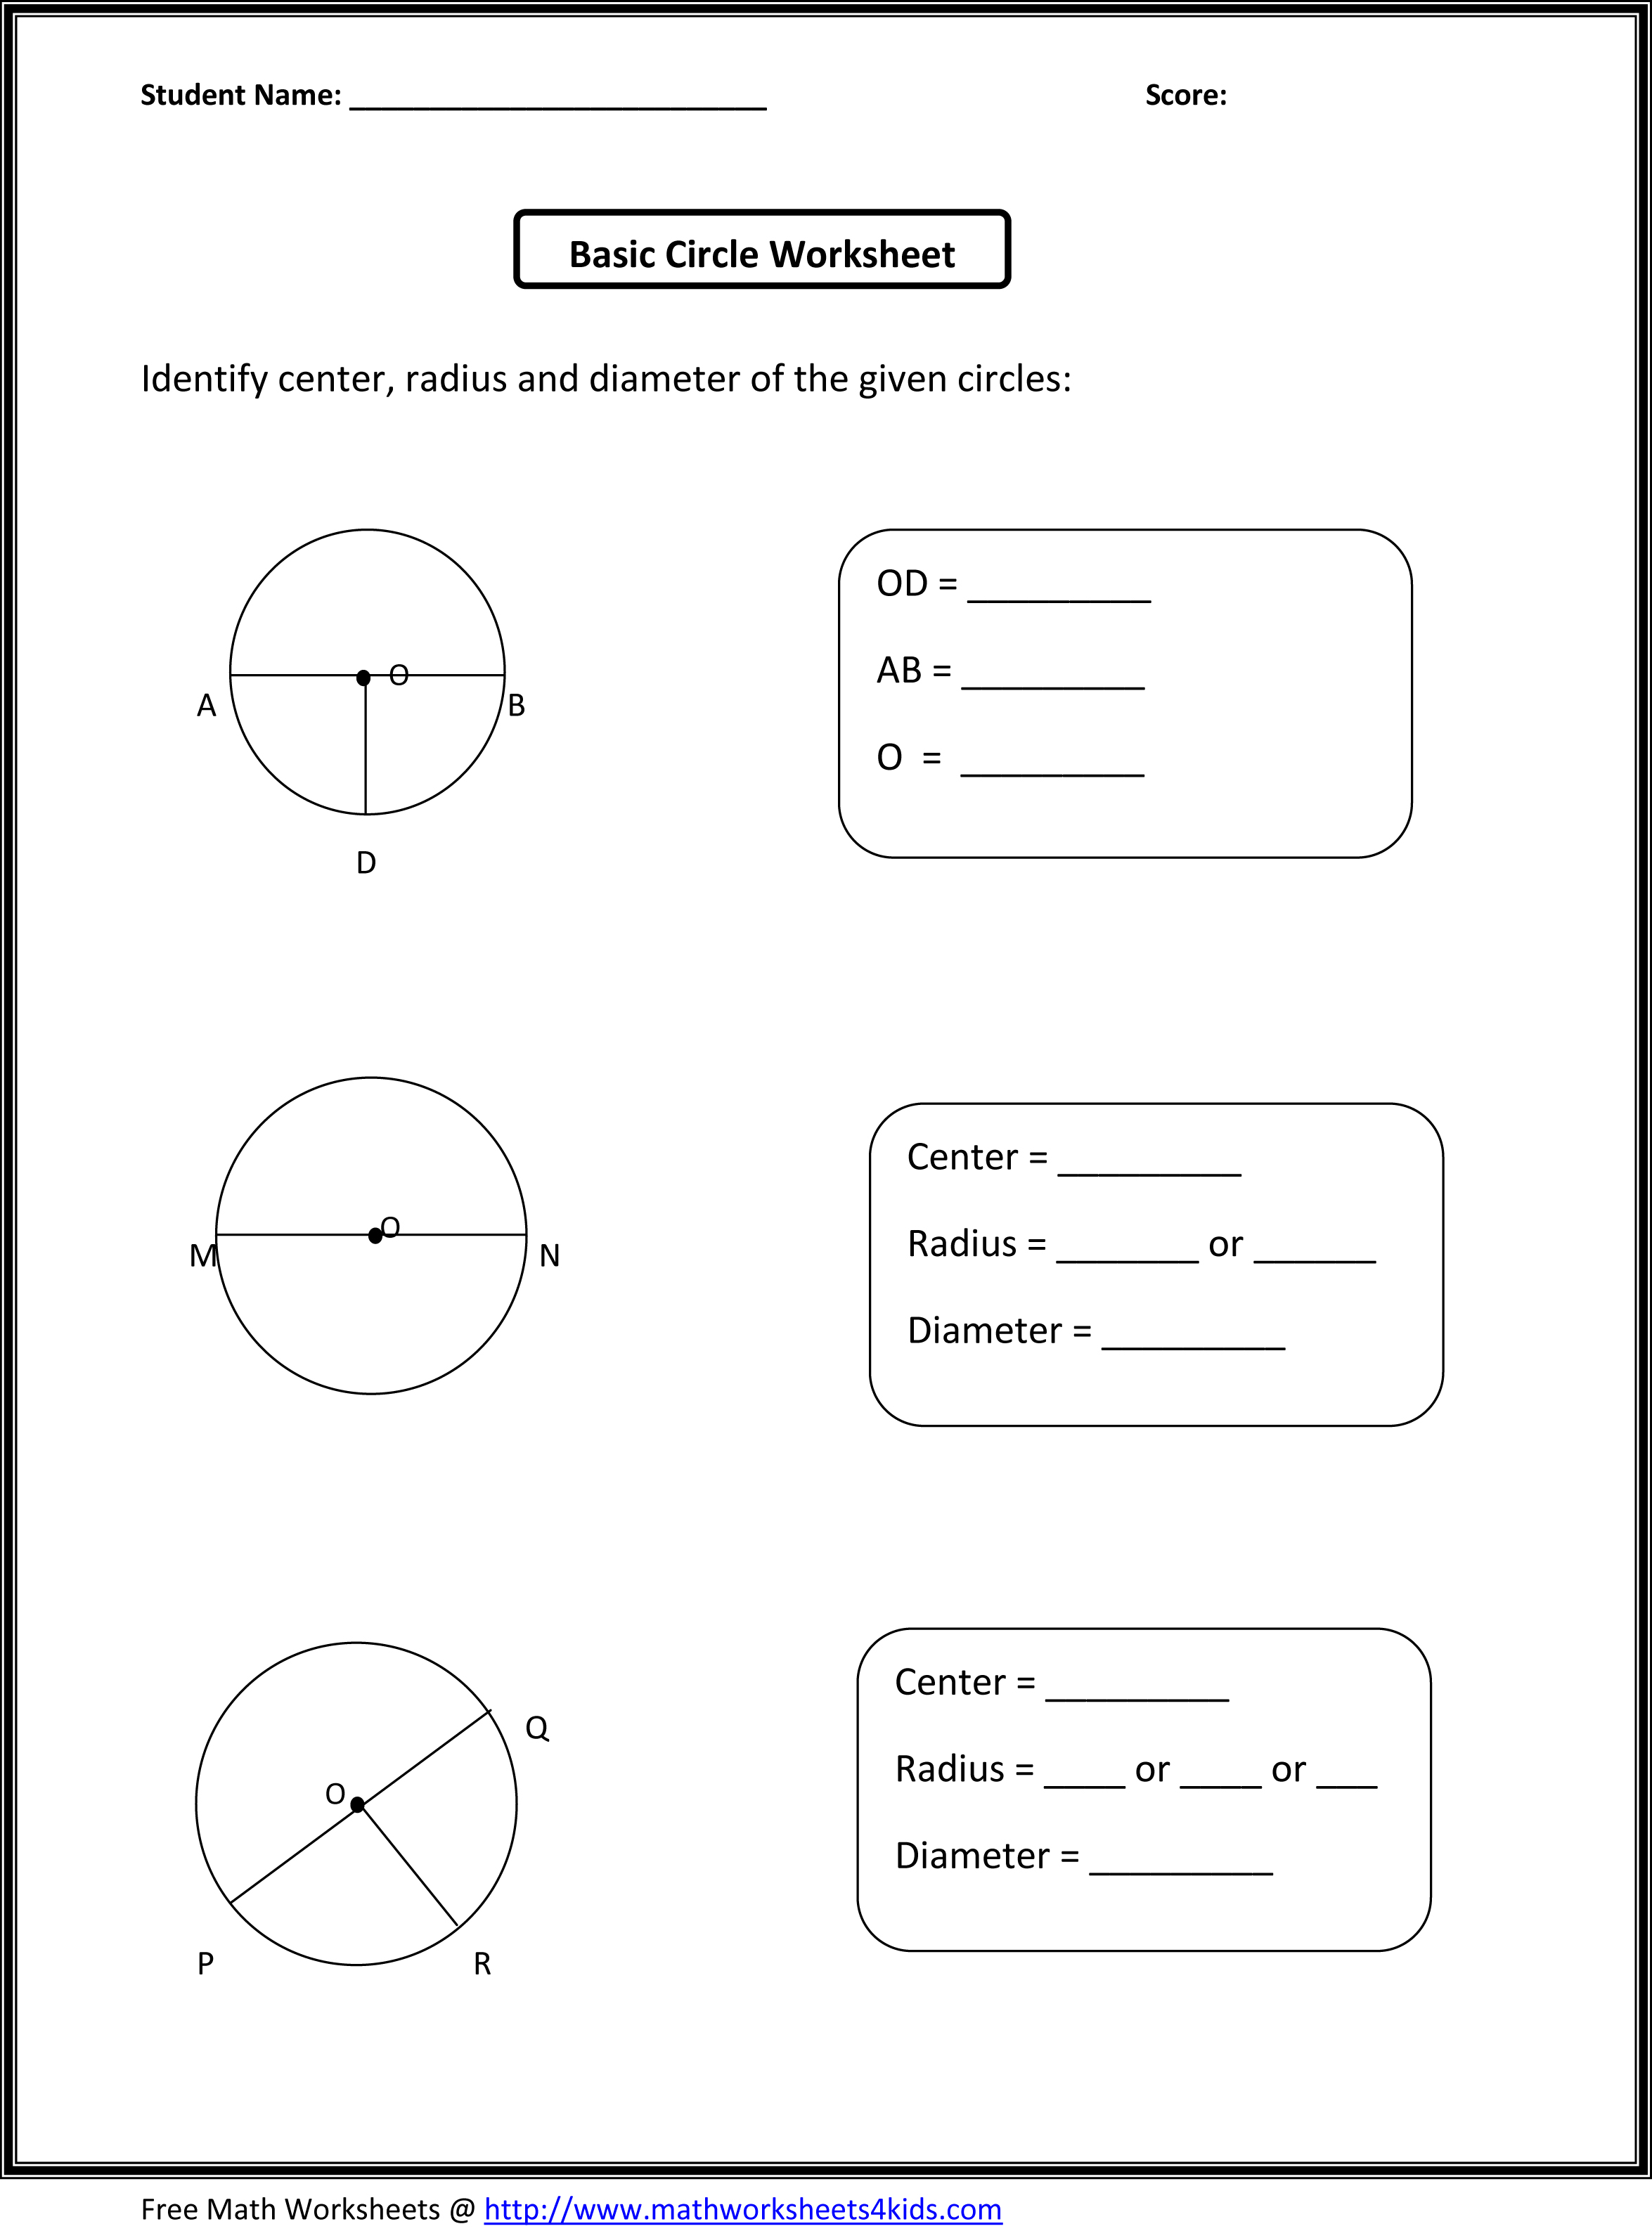 Worksheet Math Problems For 3rd Graders math problems for 3rd graders worksheets abitlikethis third grade worksheets